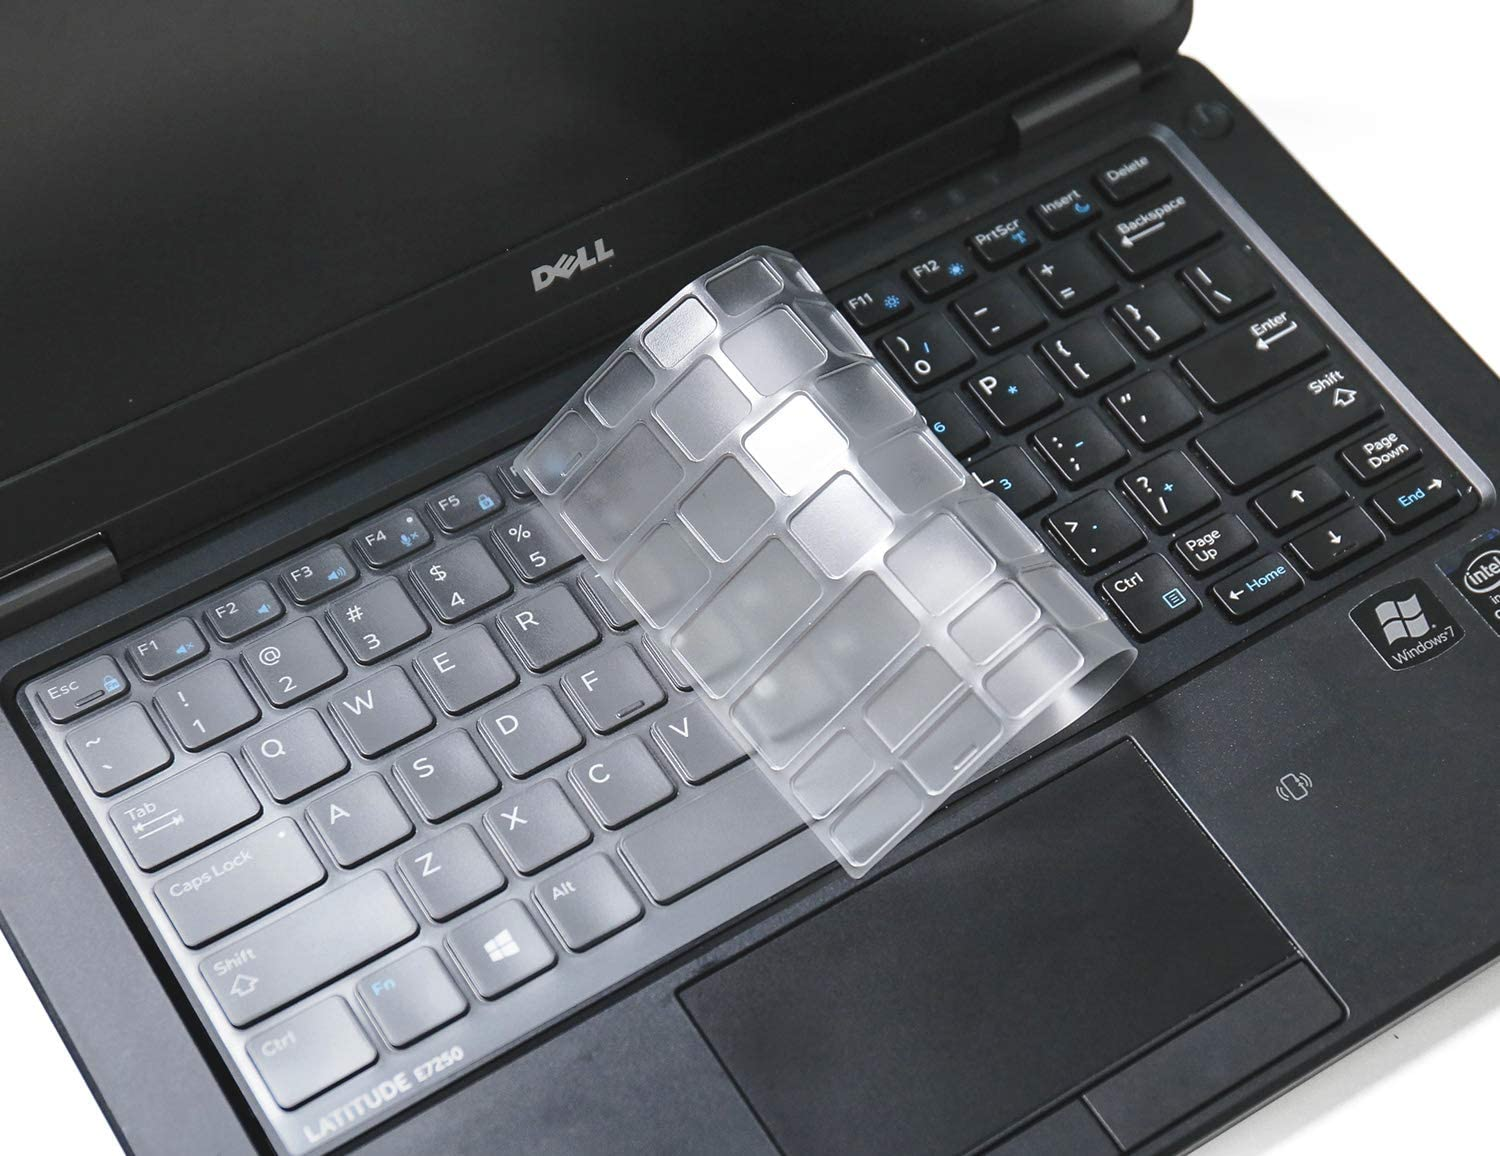 Ultra Thin Keyboard Cover for Dell Latitude E7250 E5250 E7270 E7370 E5270 E7389 E5270 / Latitude 7290 7280 7380 7390 Soft-Touch TPU Protective Skin